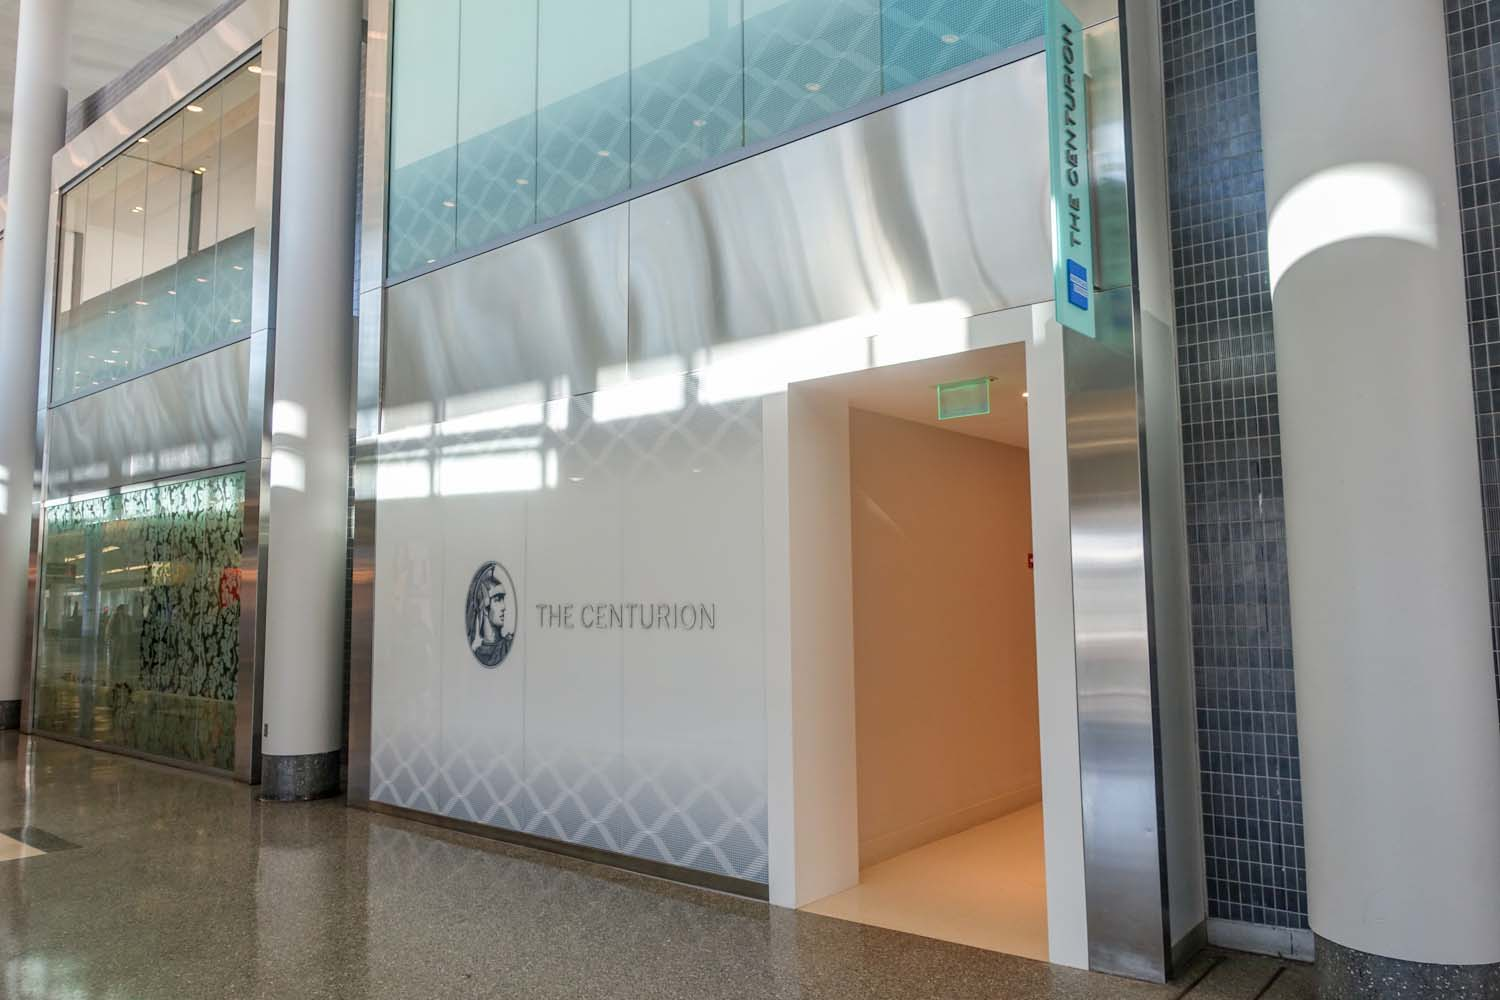 The entrance to the Centurion Lounge PHL International Airport